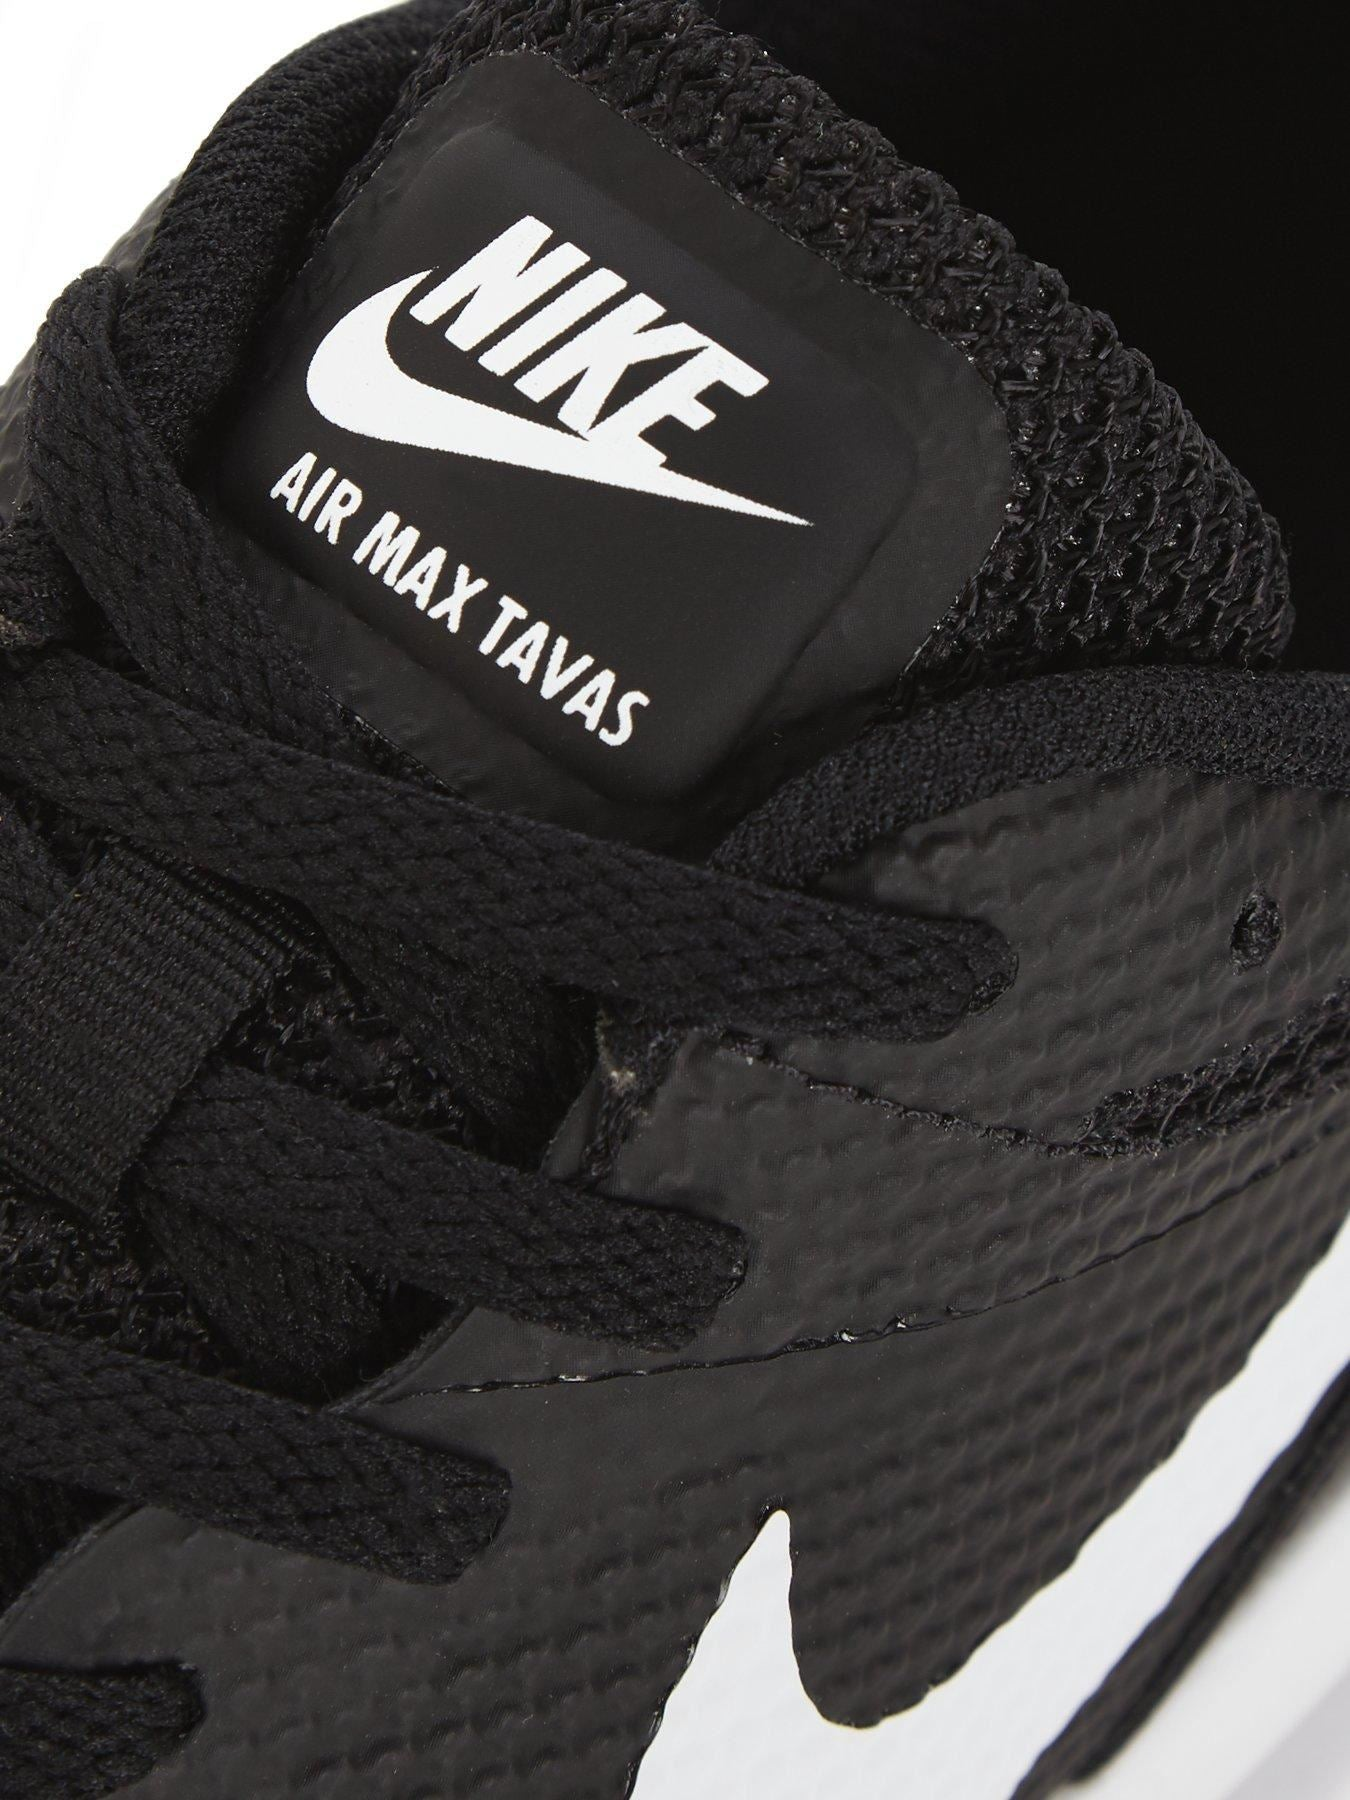 NIKE AIR MAX TAVAS 705149 024 BLACK-WHITE